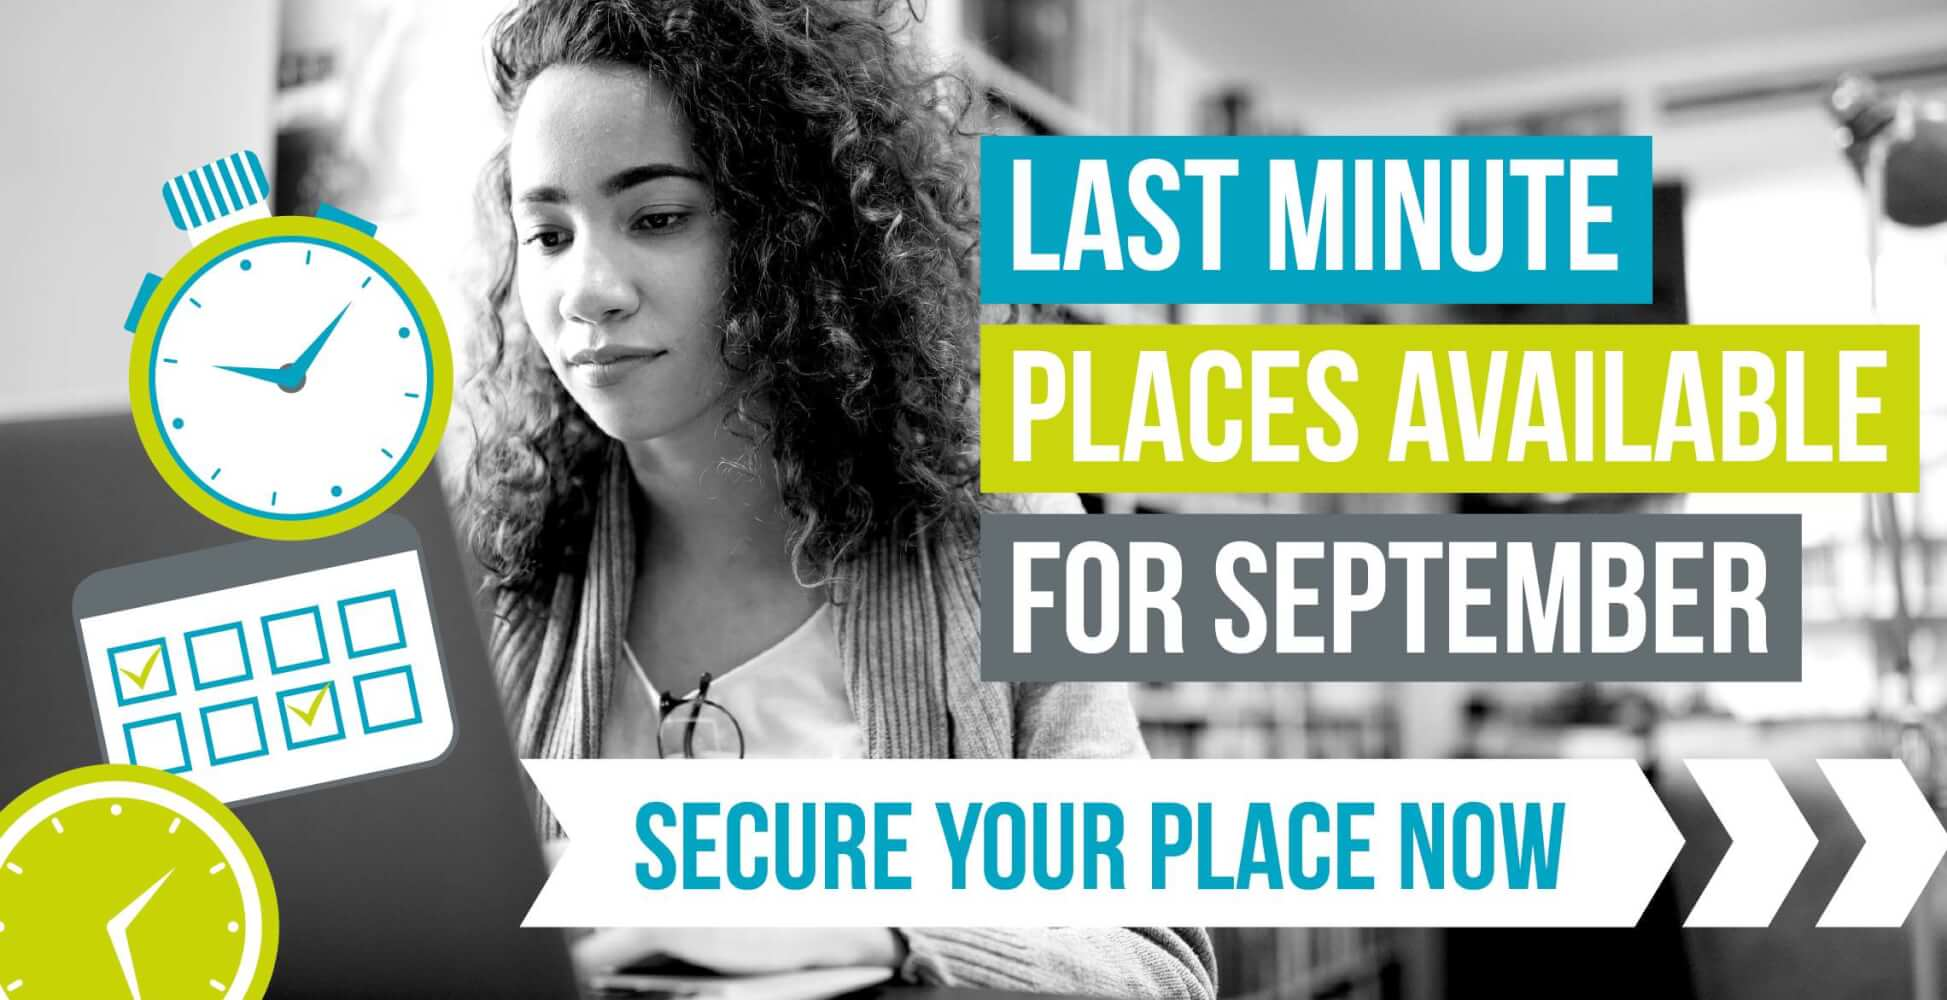 Last minute places available for September